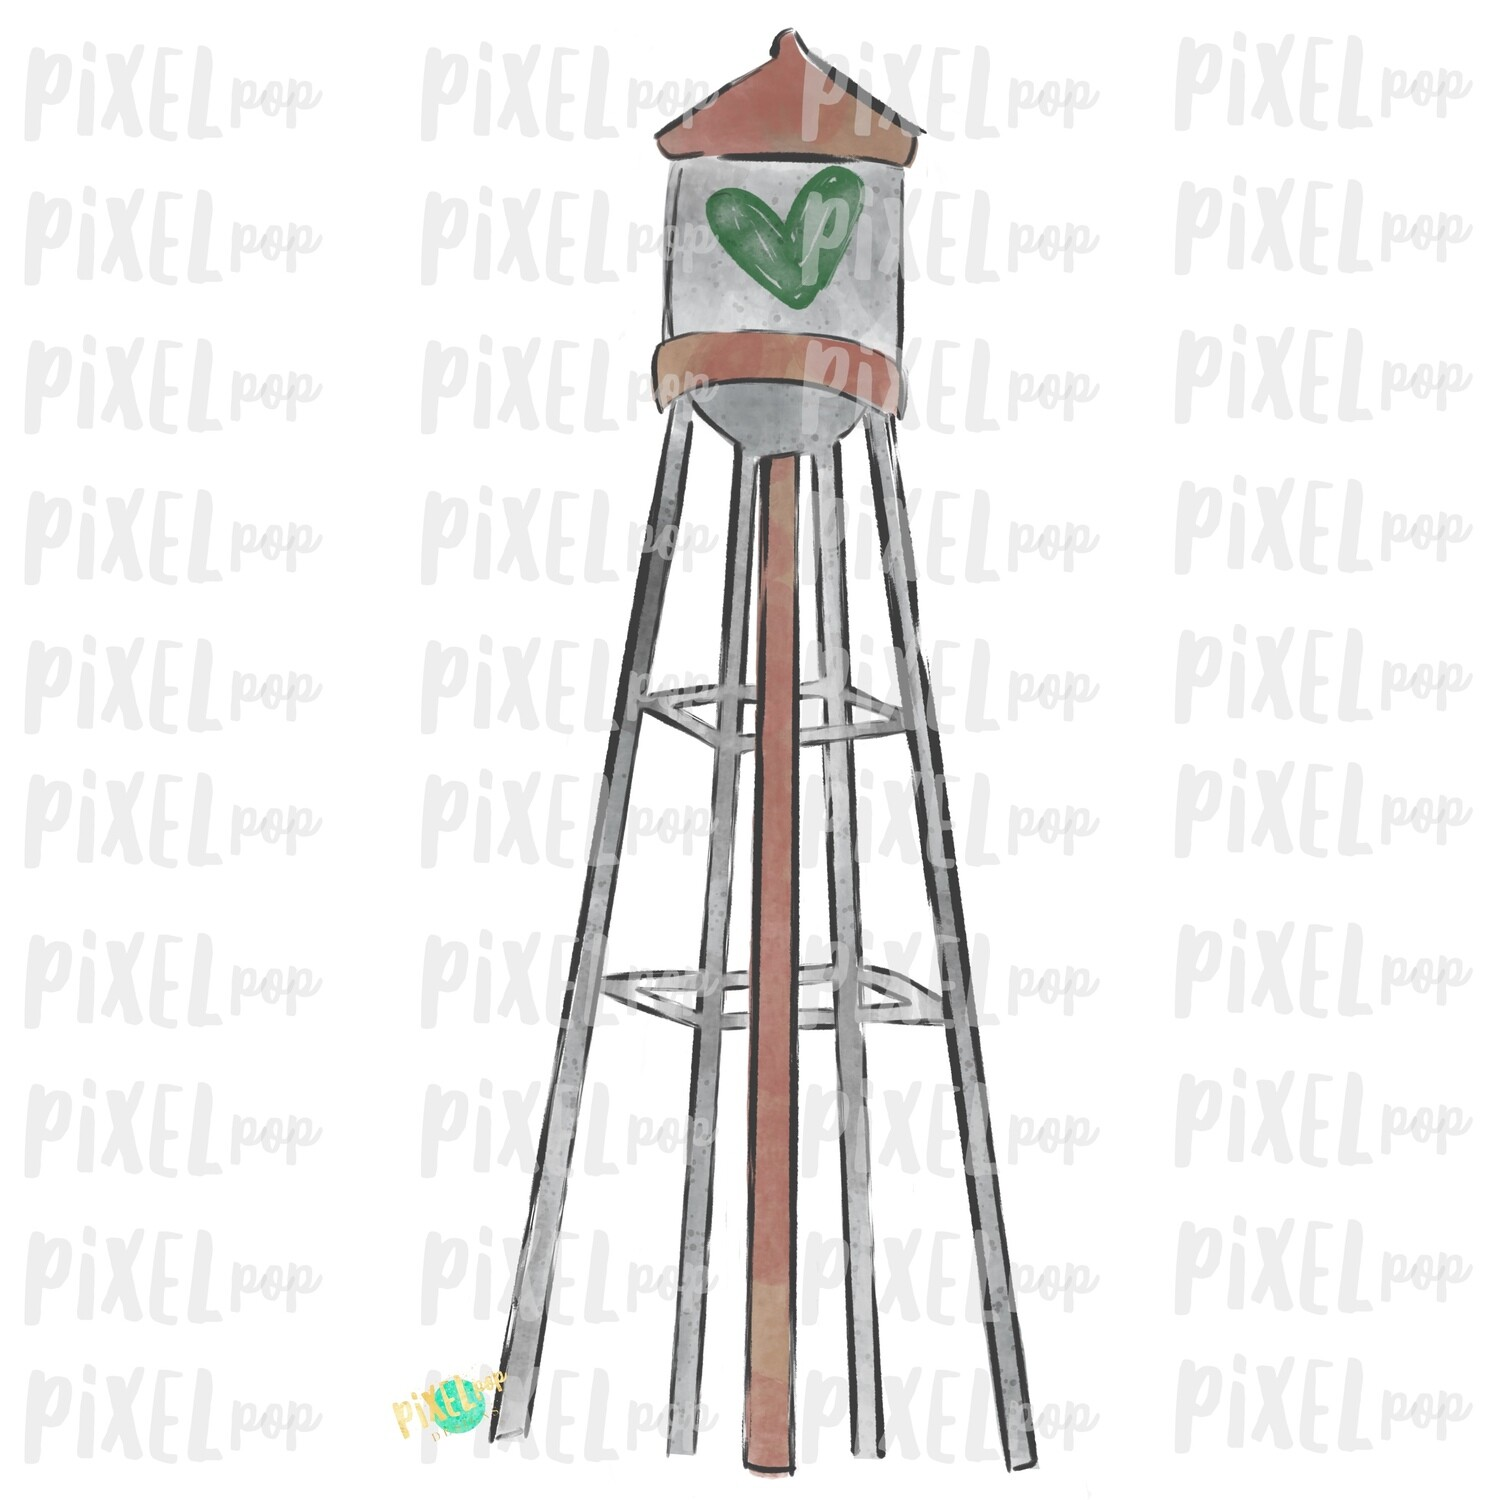 Water Tower Green Heart Digital Art Sublimation PNG   Valentines Day Art   Country Valentine   Digital Download   Printable Art   Clip Art